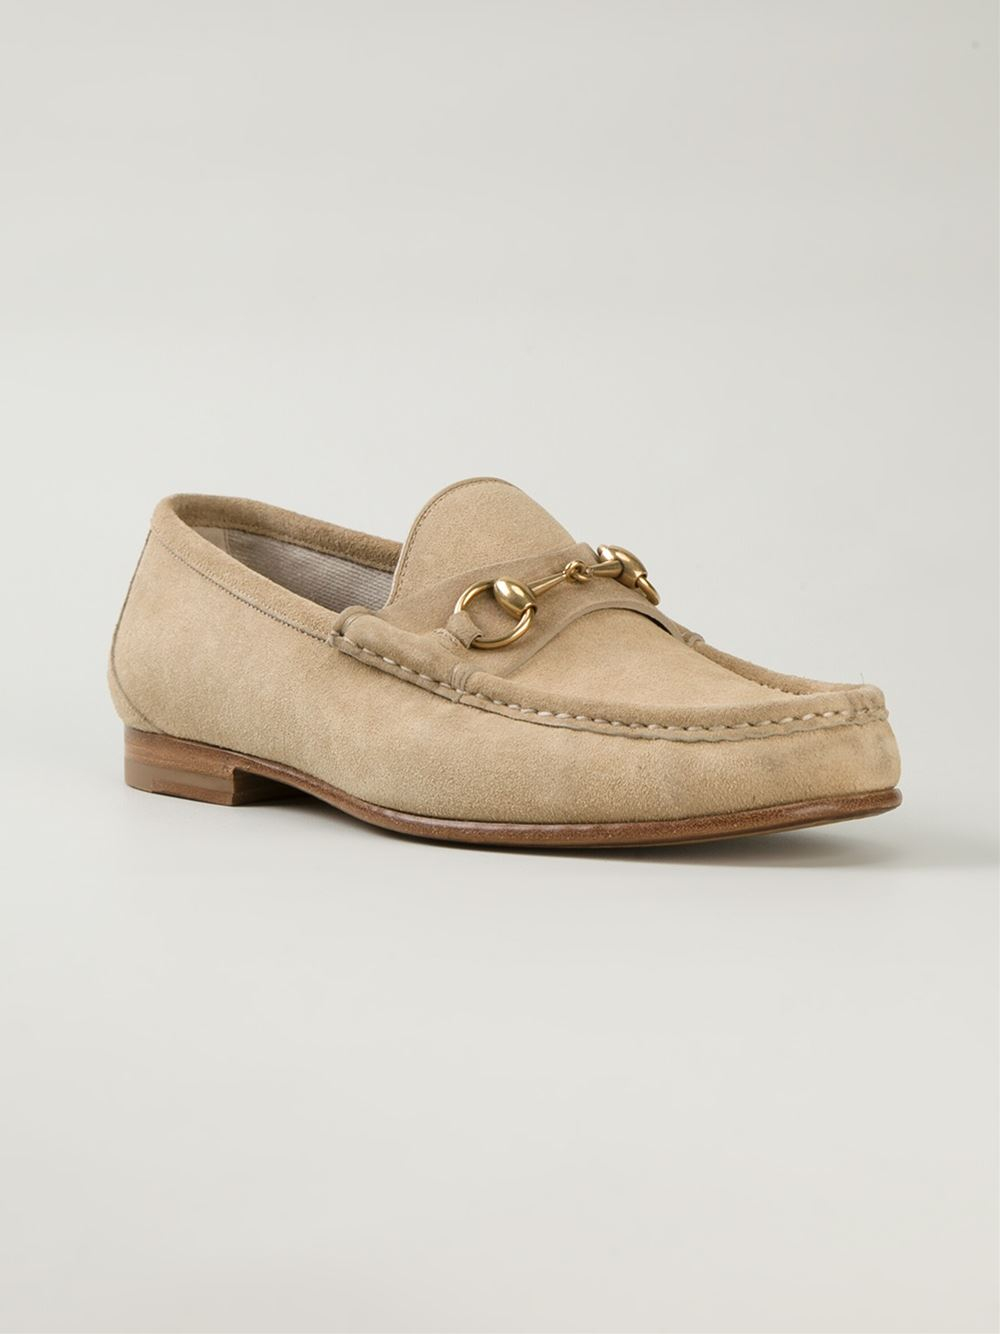 Lyst - Gucci Green Python Horsebit Loafers in Natural for Men